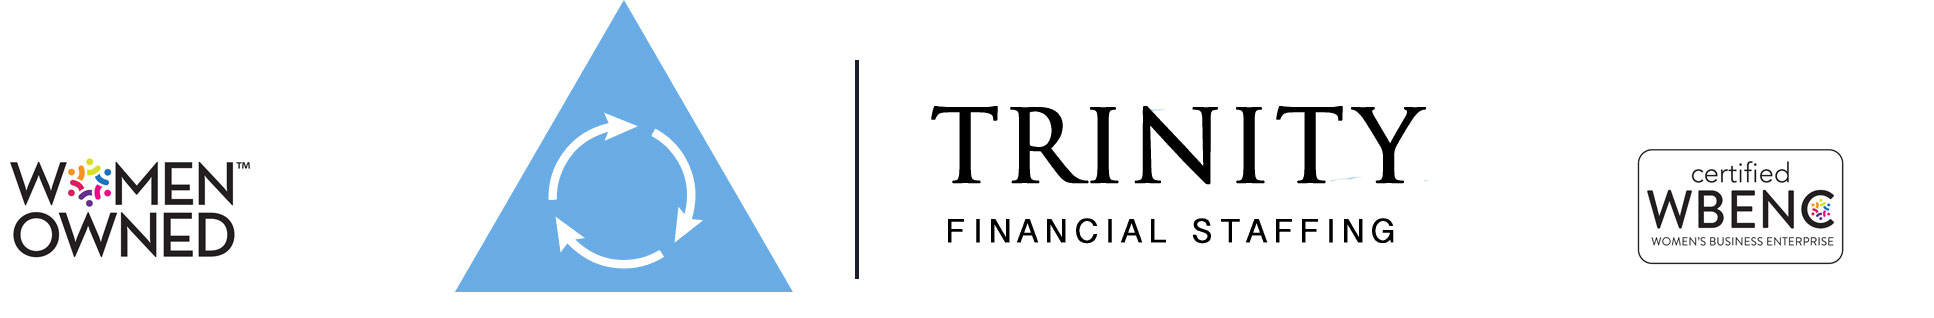 Trinity Financial Staffing